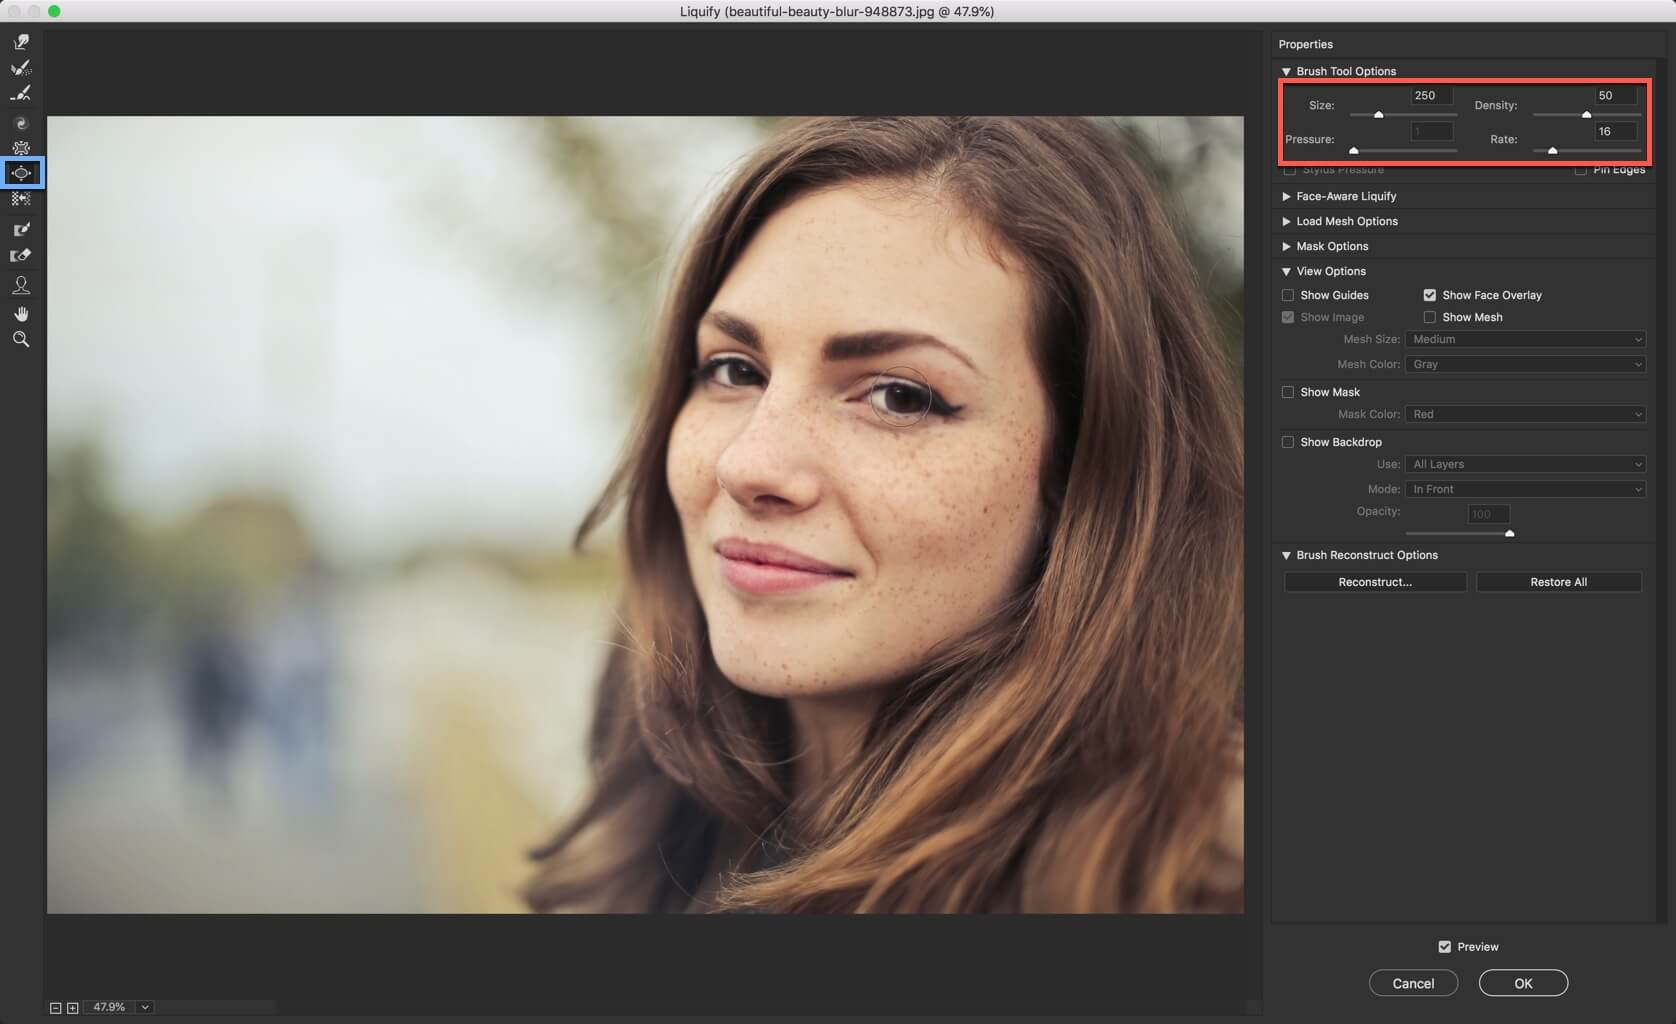 2 - 1 Step Tutorial to Change Eye Size in Photoshop